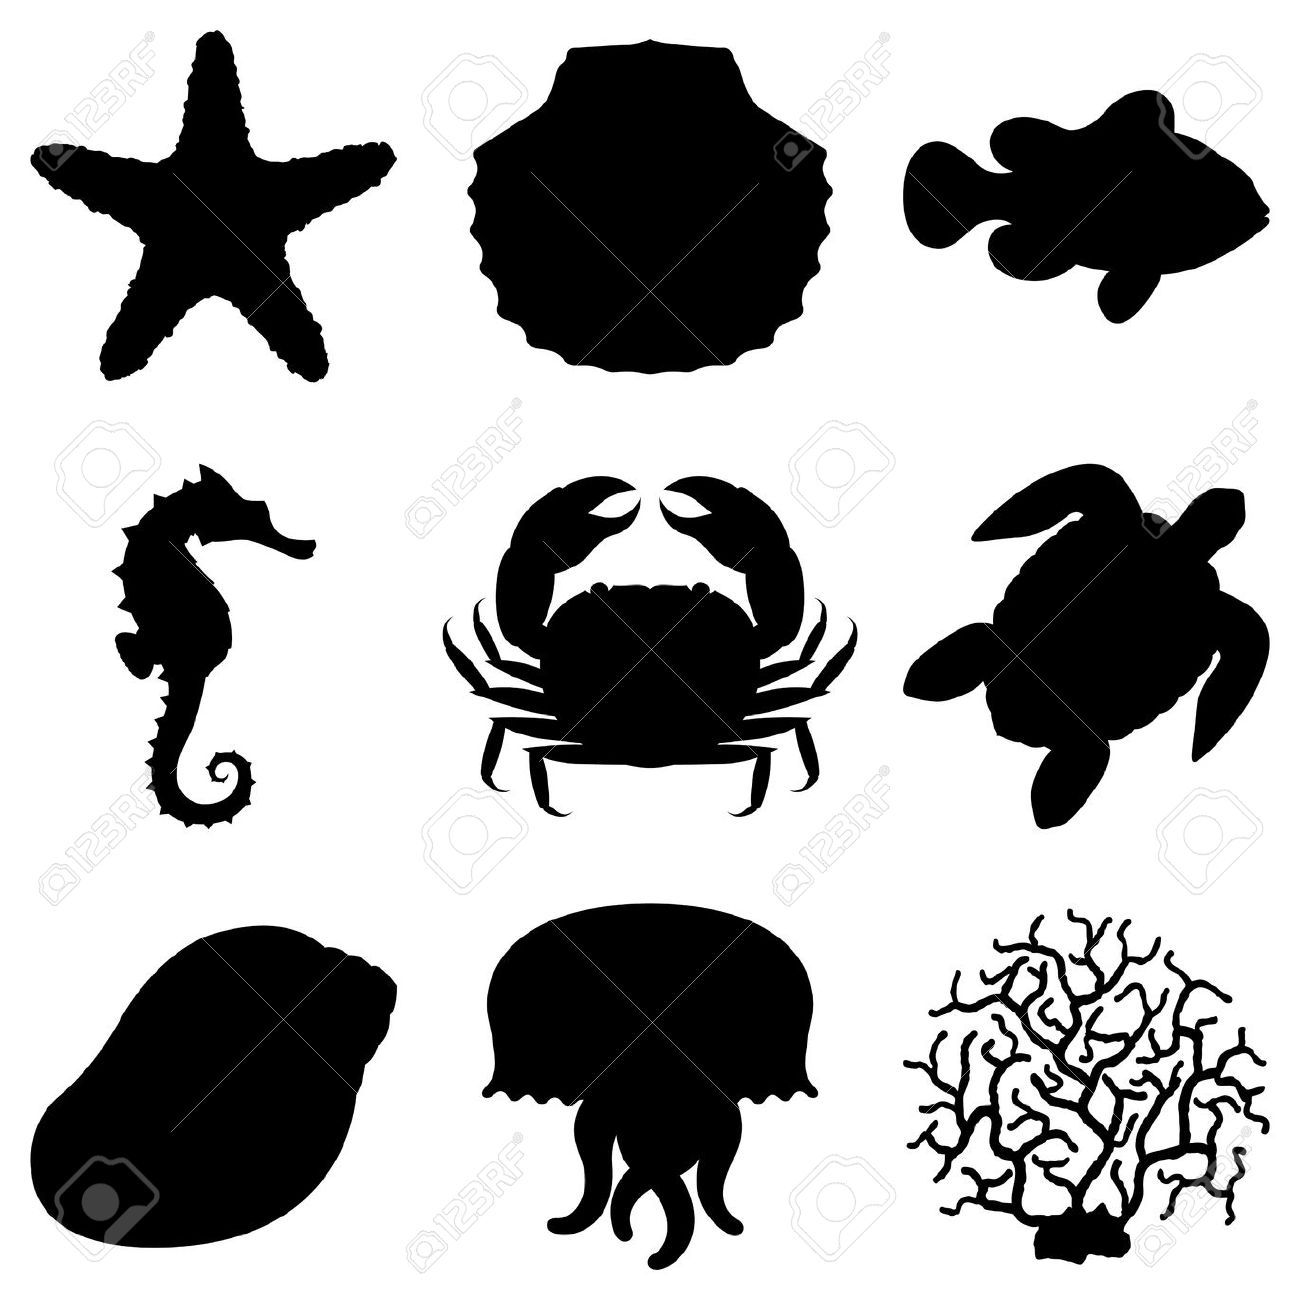 Image result for sea turtle silhouette Turtle silhouette